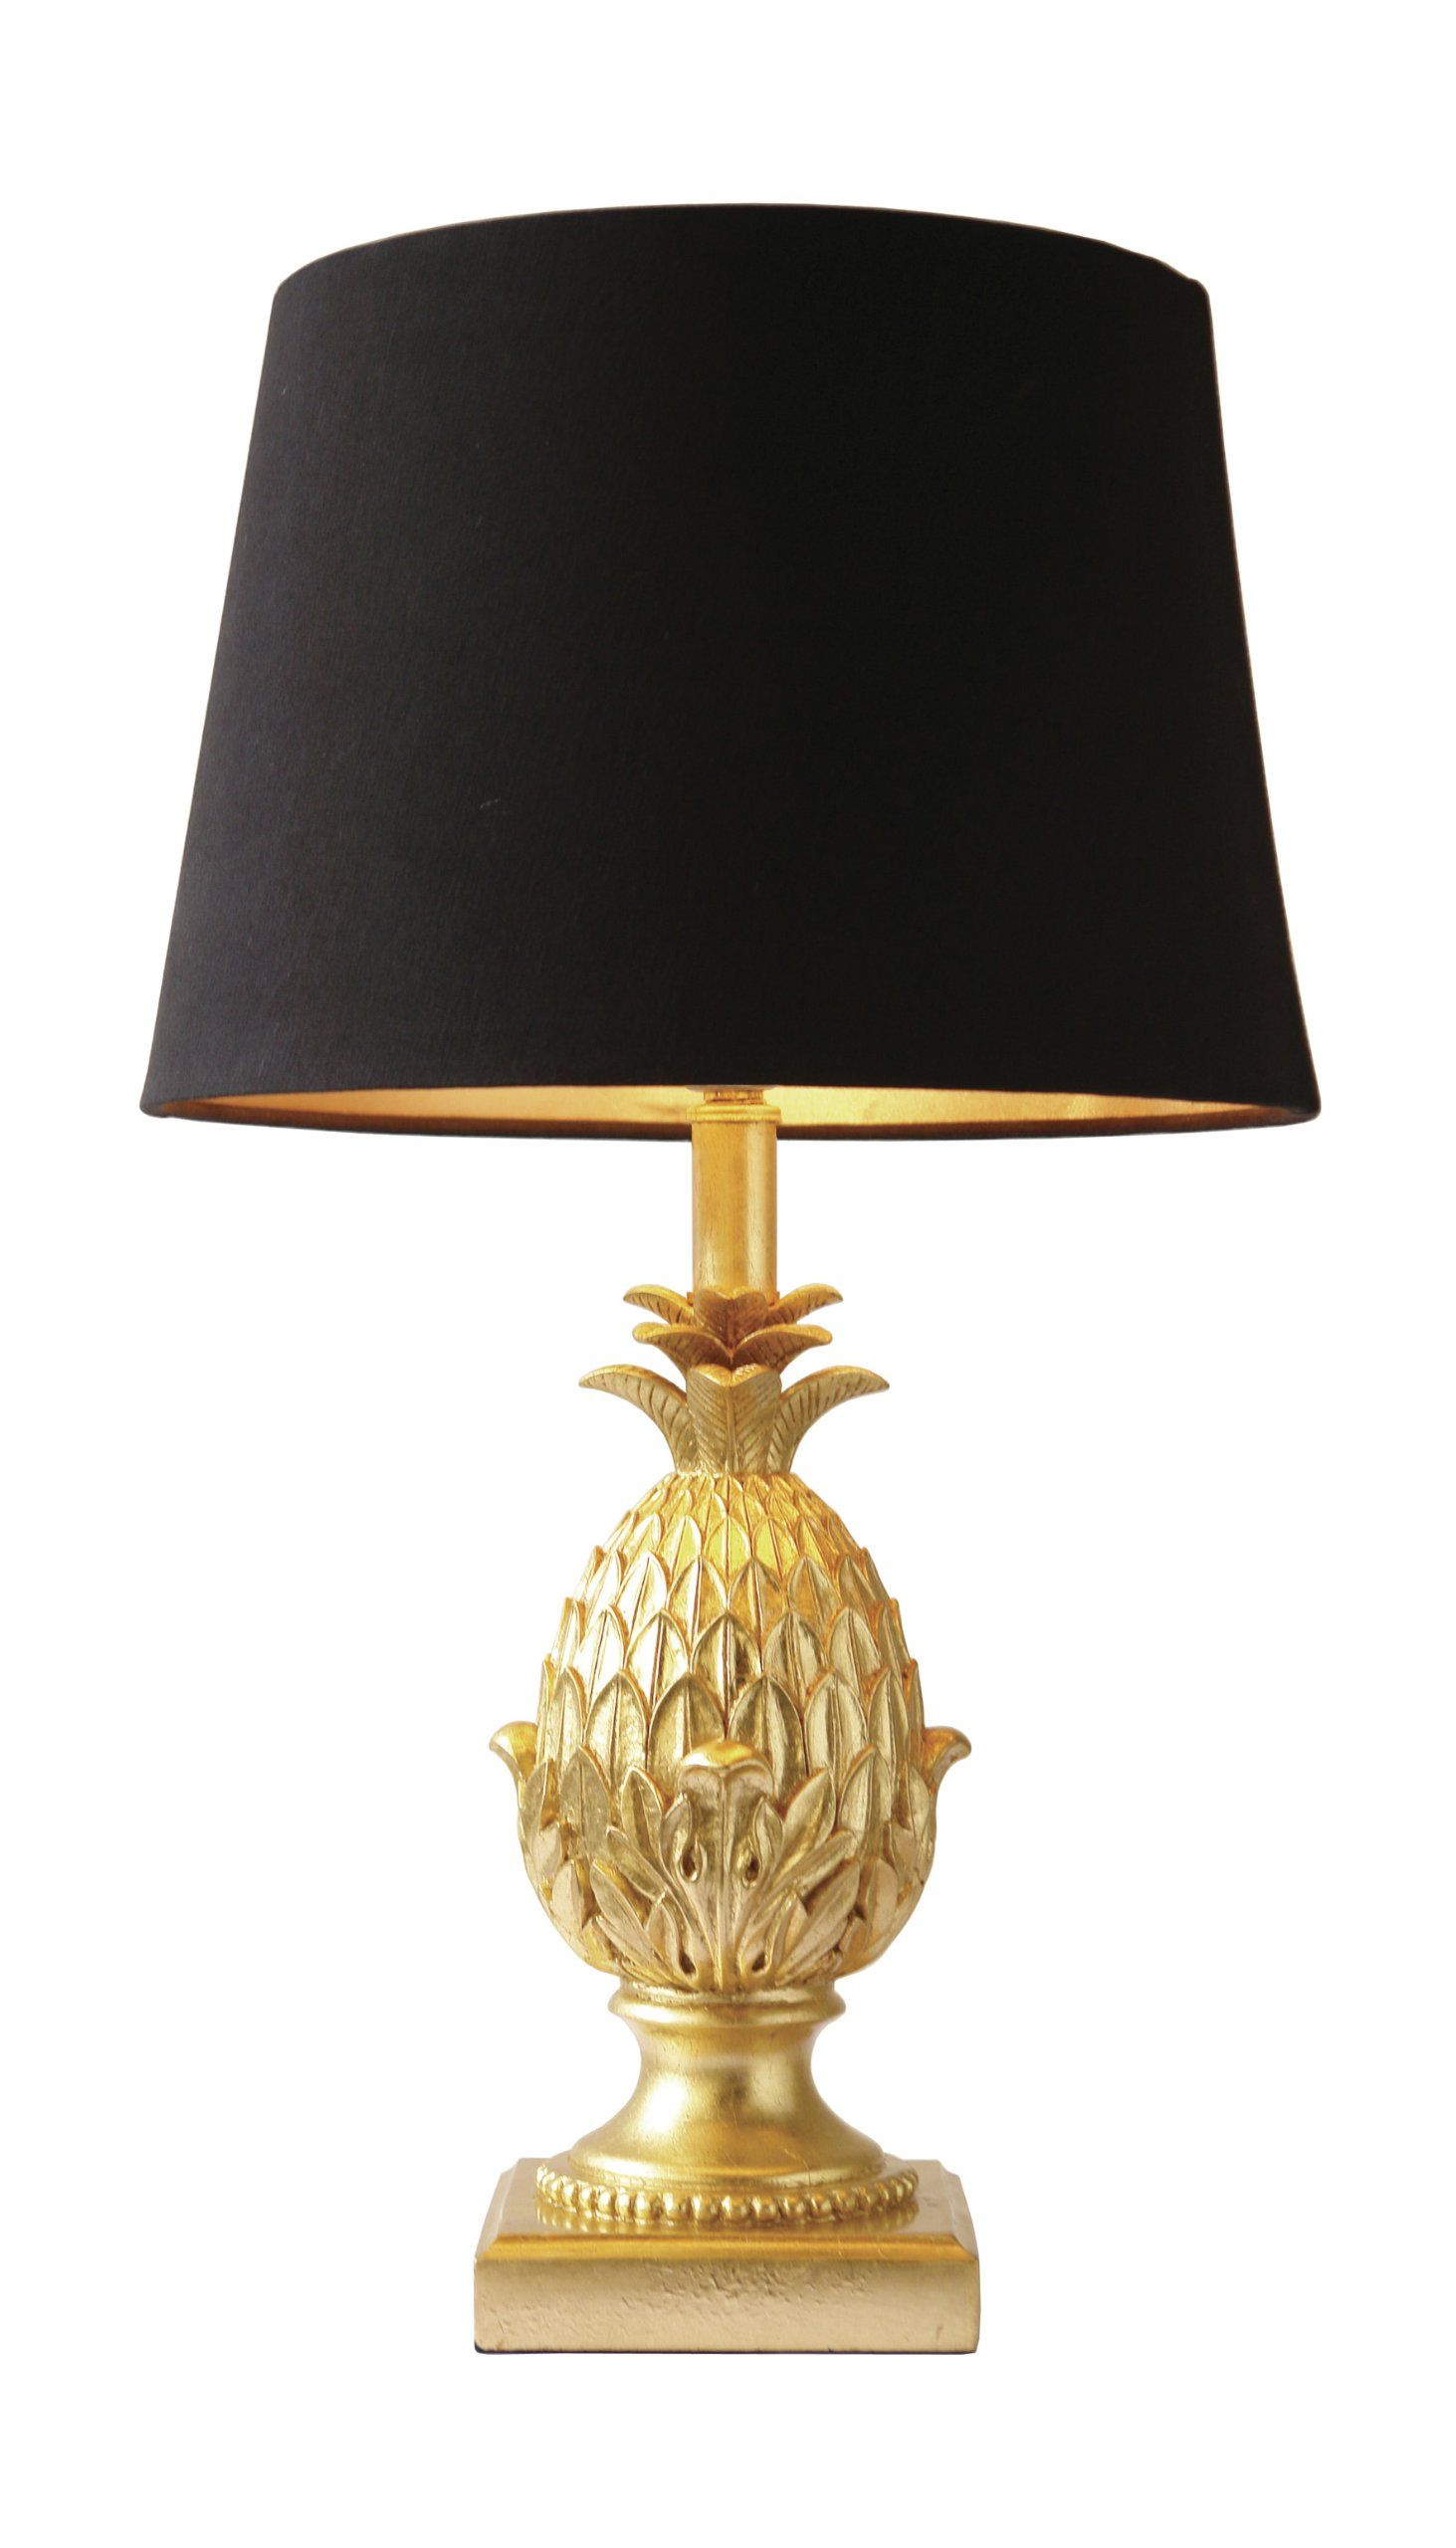 Pineapple Table Lamp with Black Shade